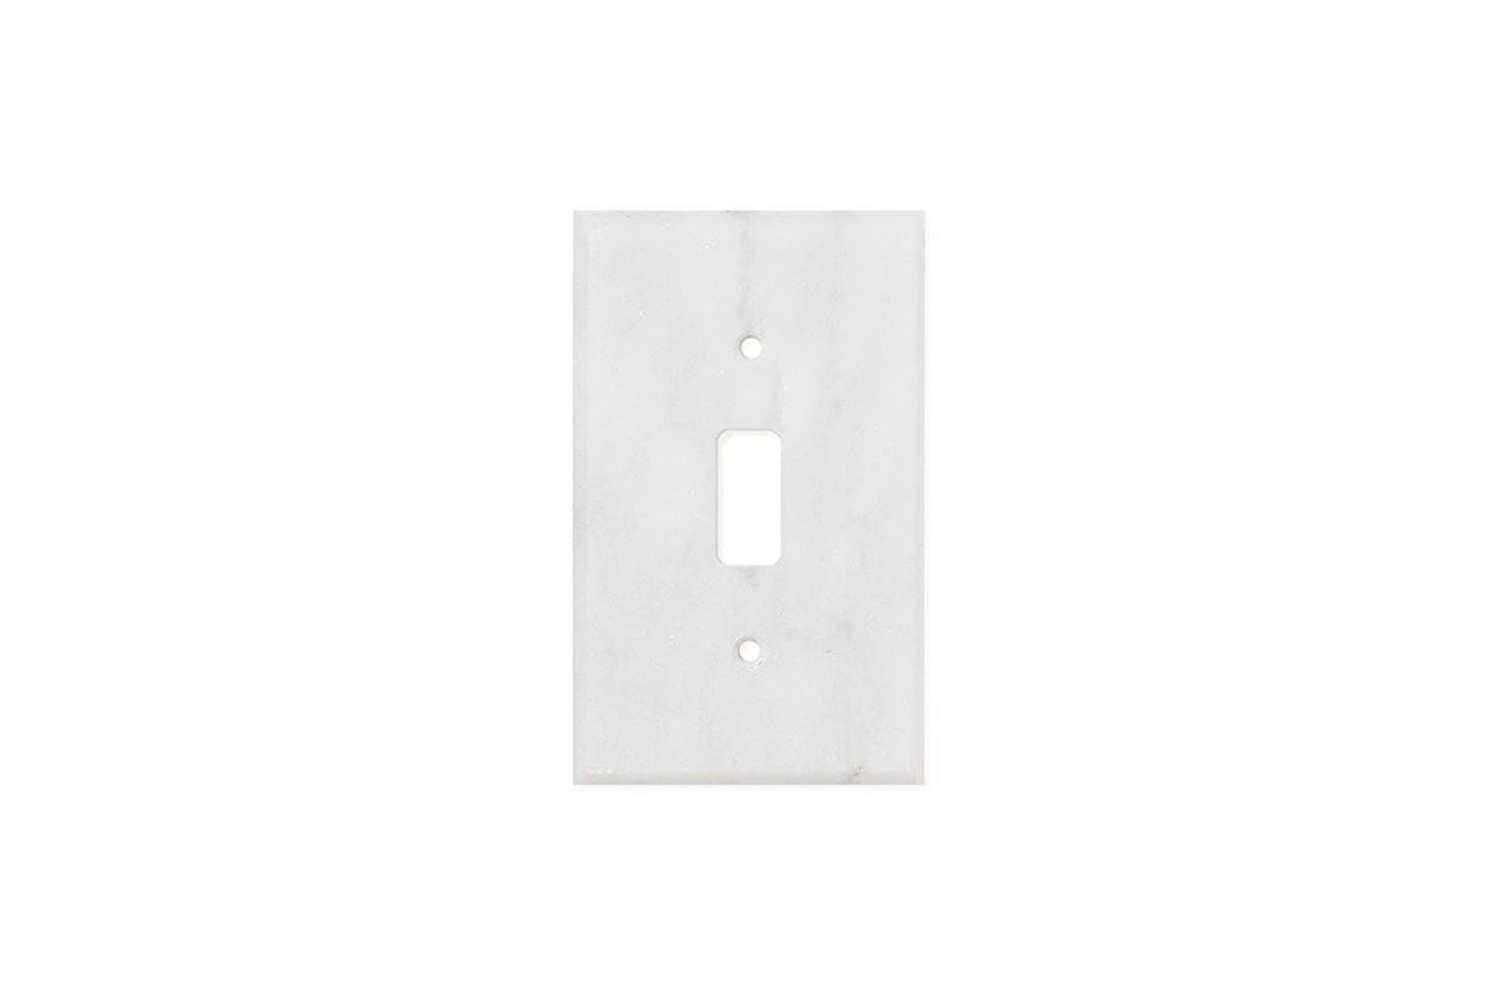 The Carrara White Marble Single Toggle Switch Plate is available as polished or honed marble for $.99 each at Tilezz.com.